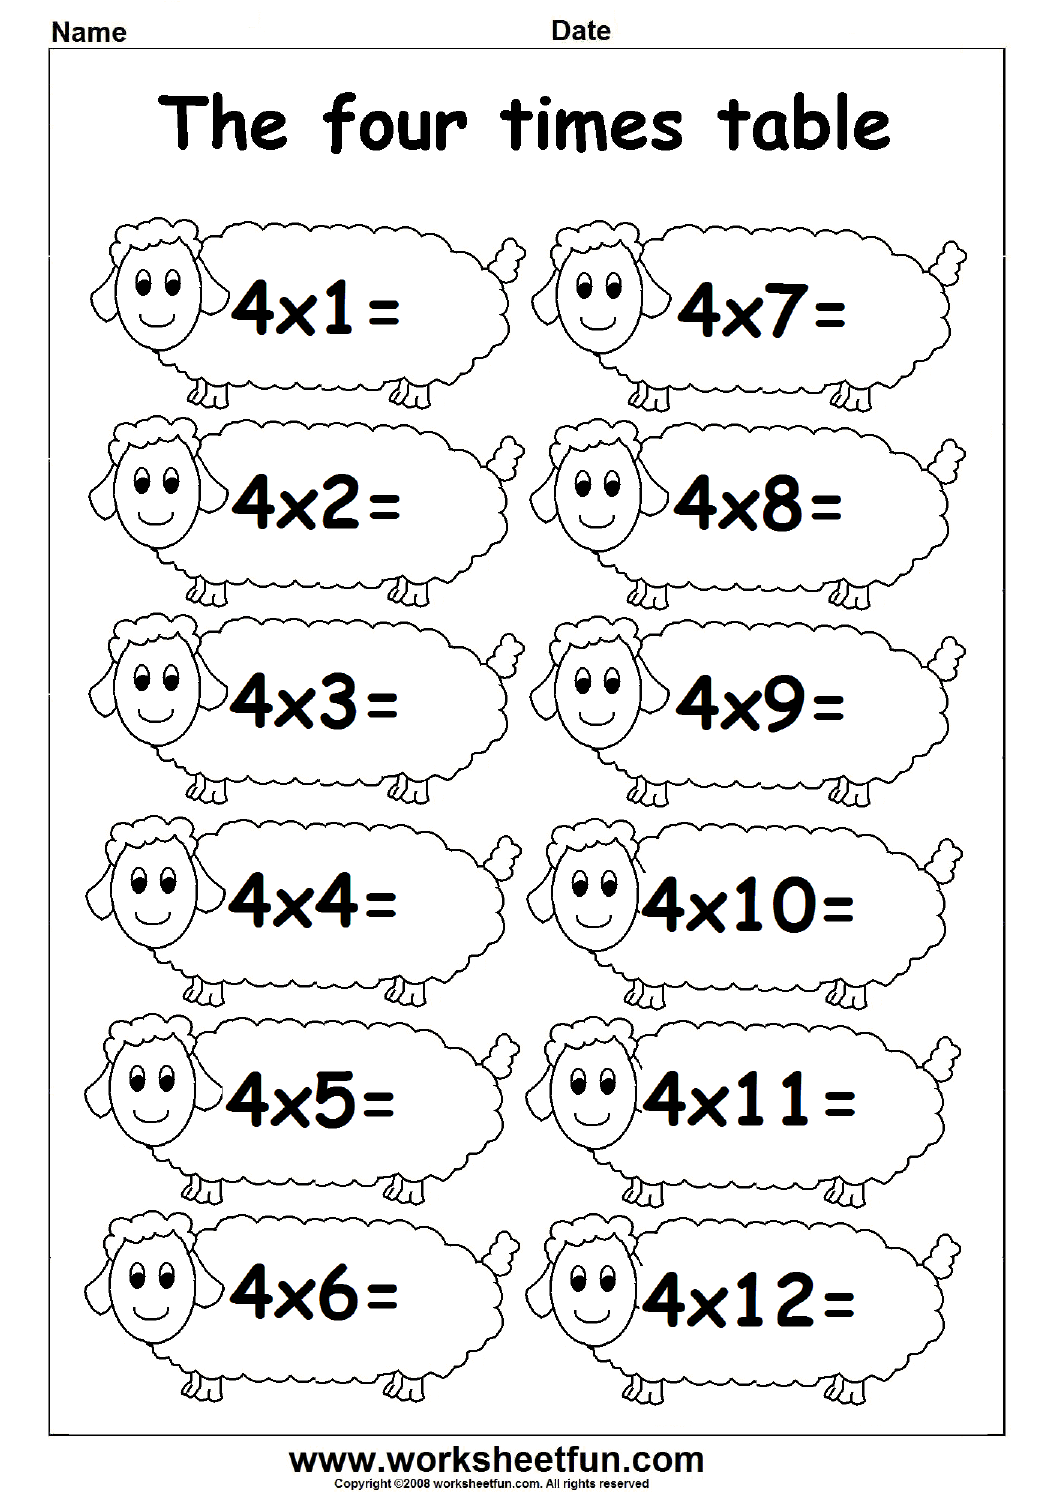 Times Table – 4 Times Table   Free Printable Worksheets – Worksheetfun